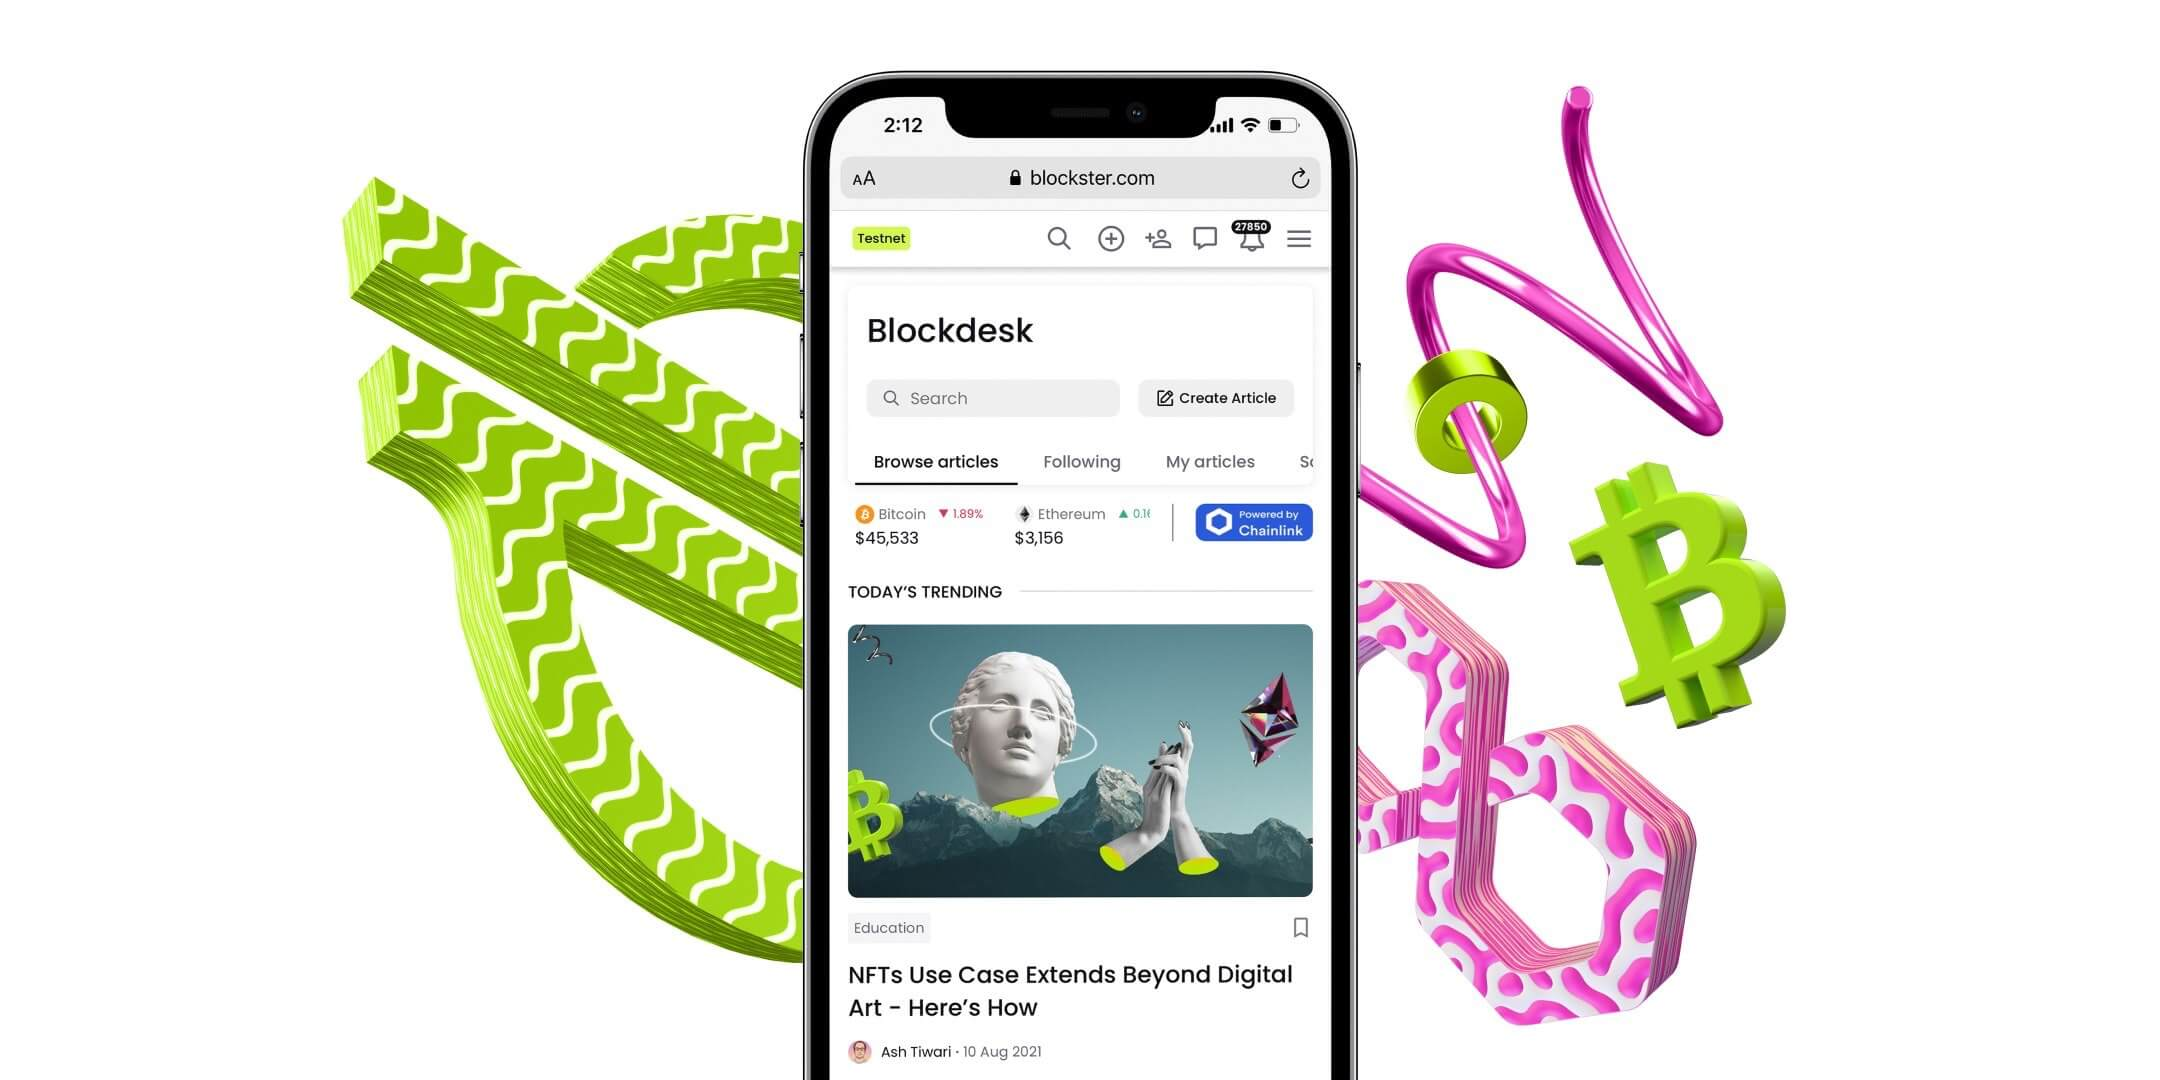 Introducing Blockster: The Official Space for the Blockchain Industry